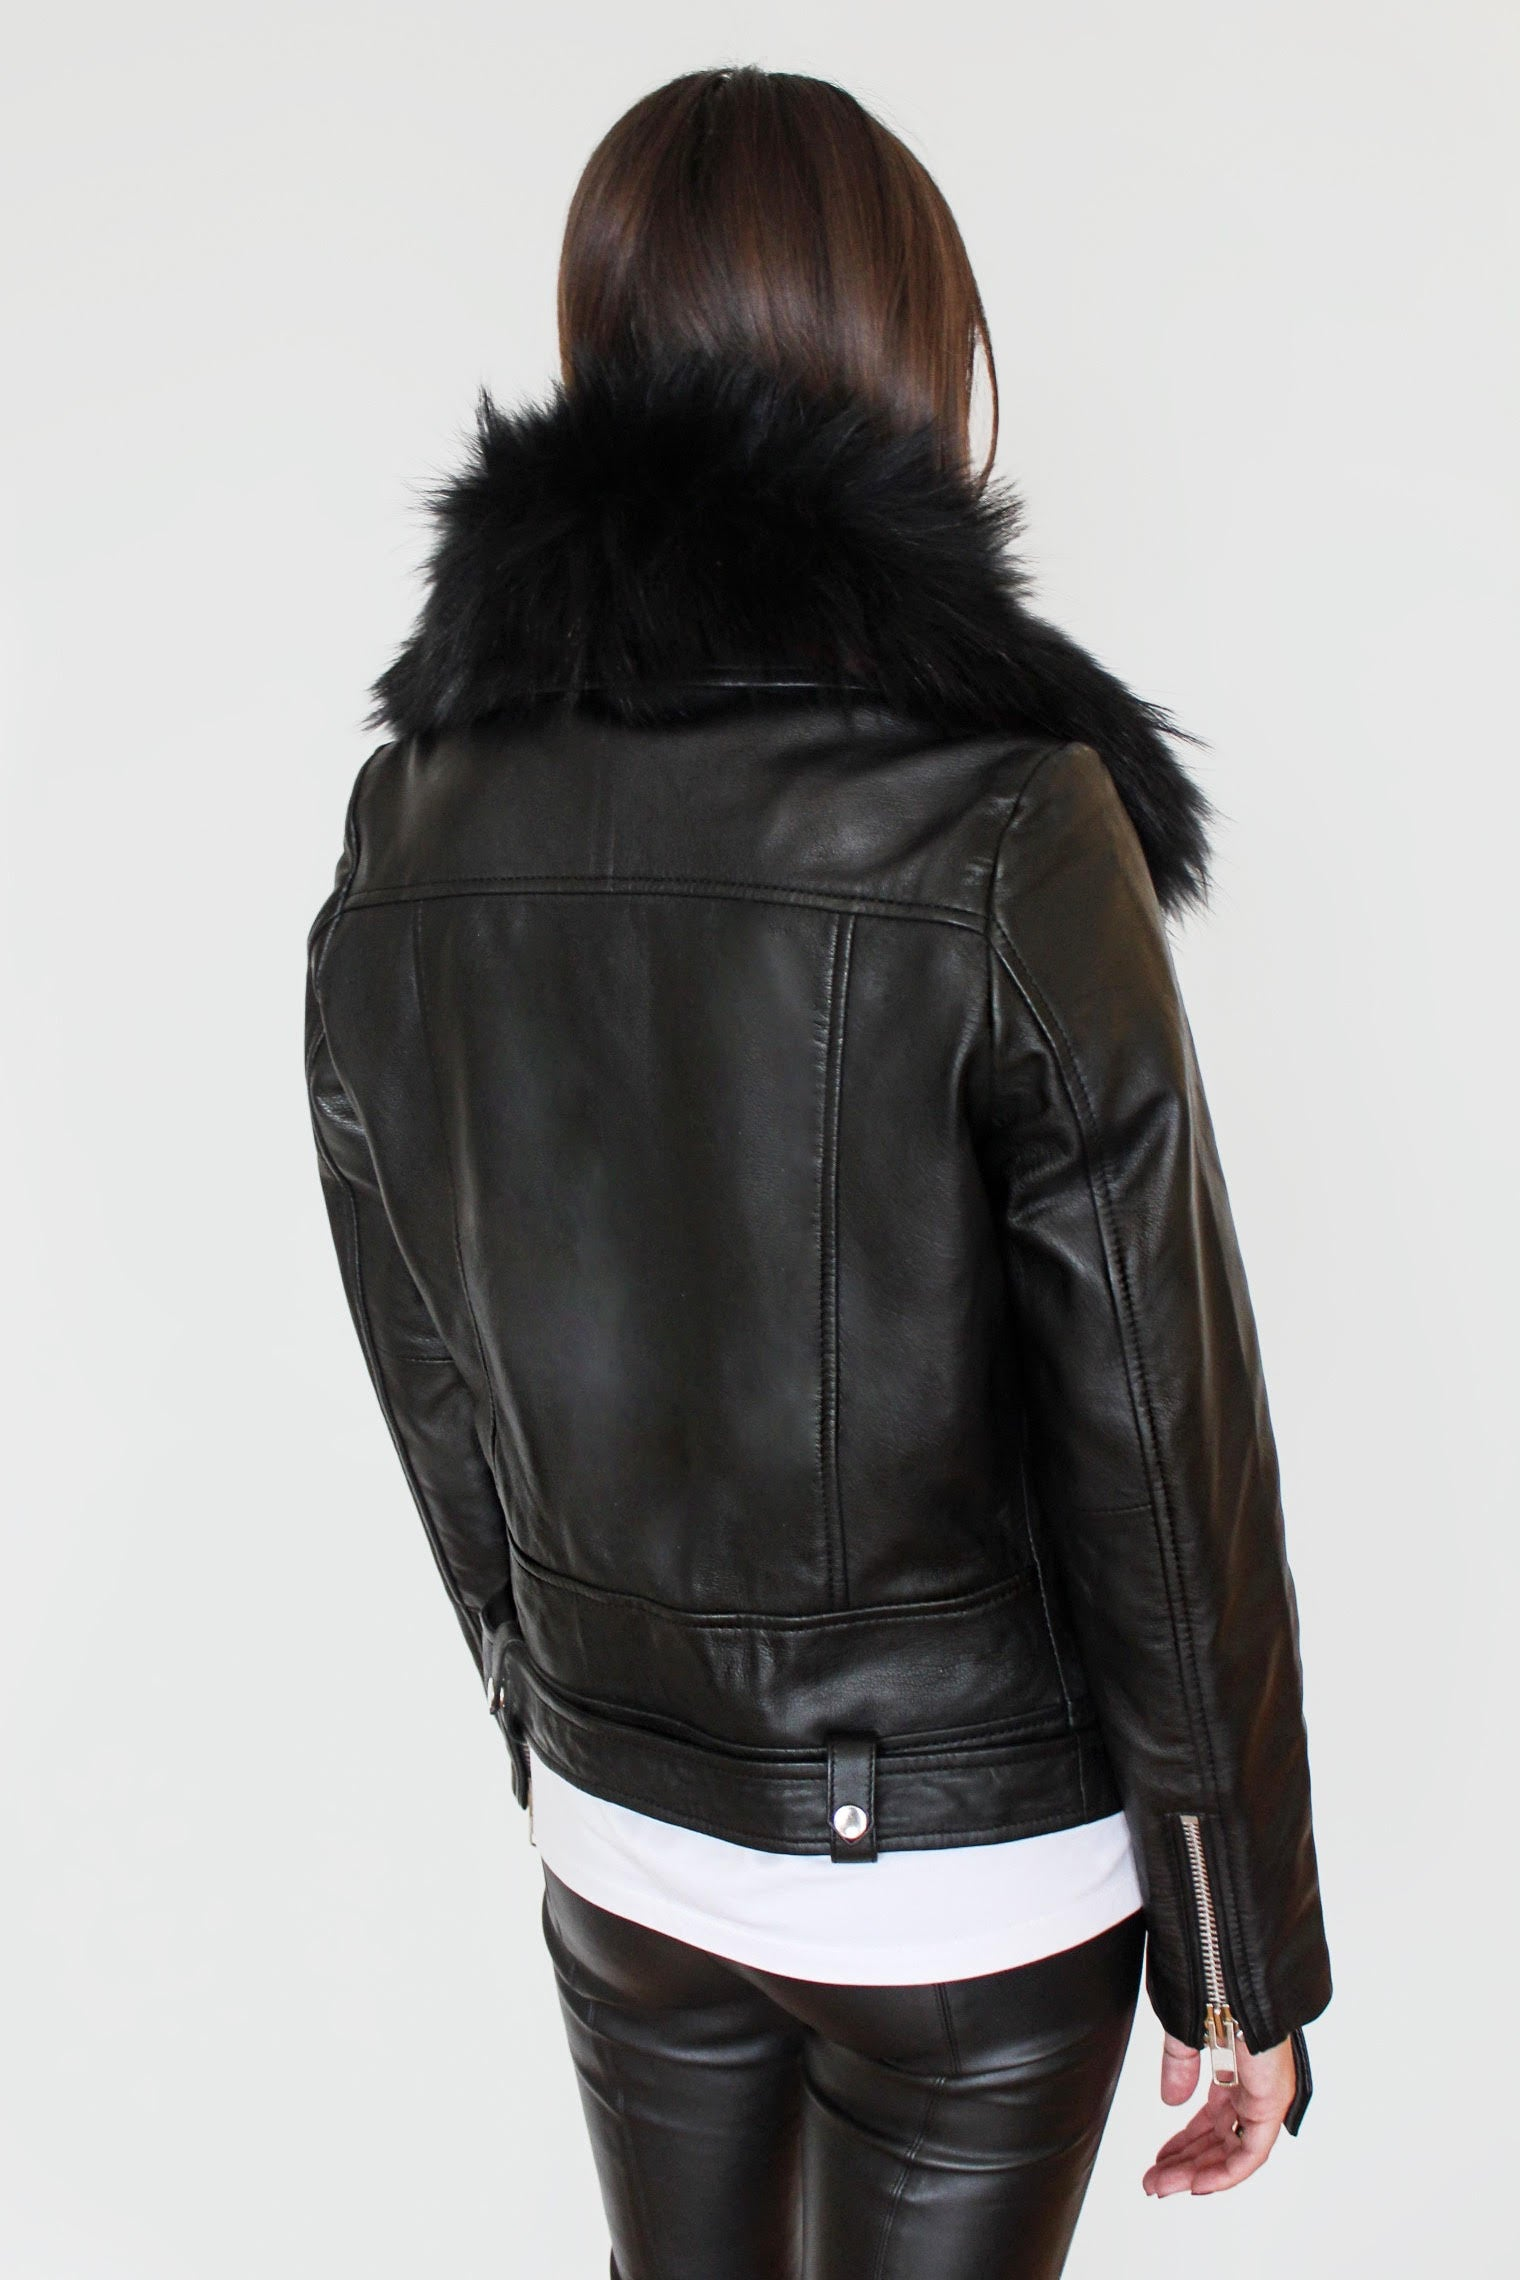 Le SLAP | Black leather biker jacket